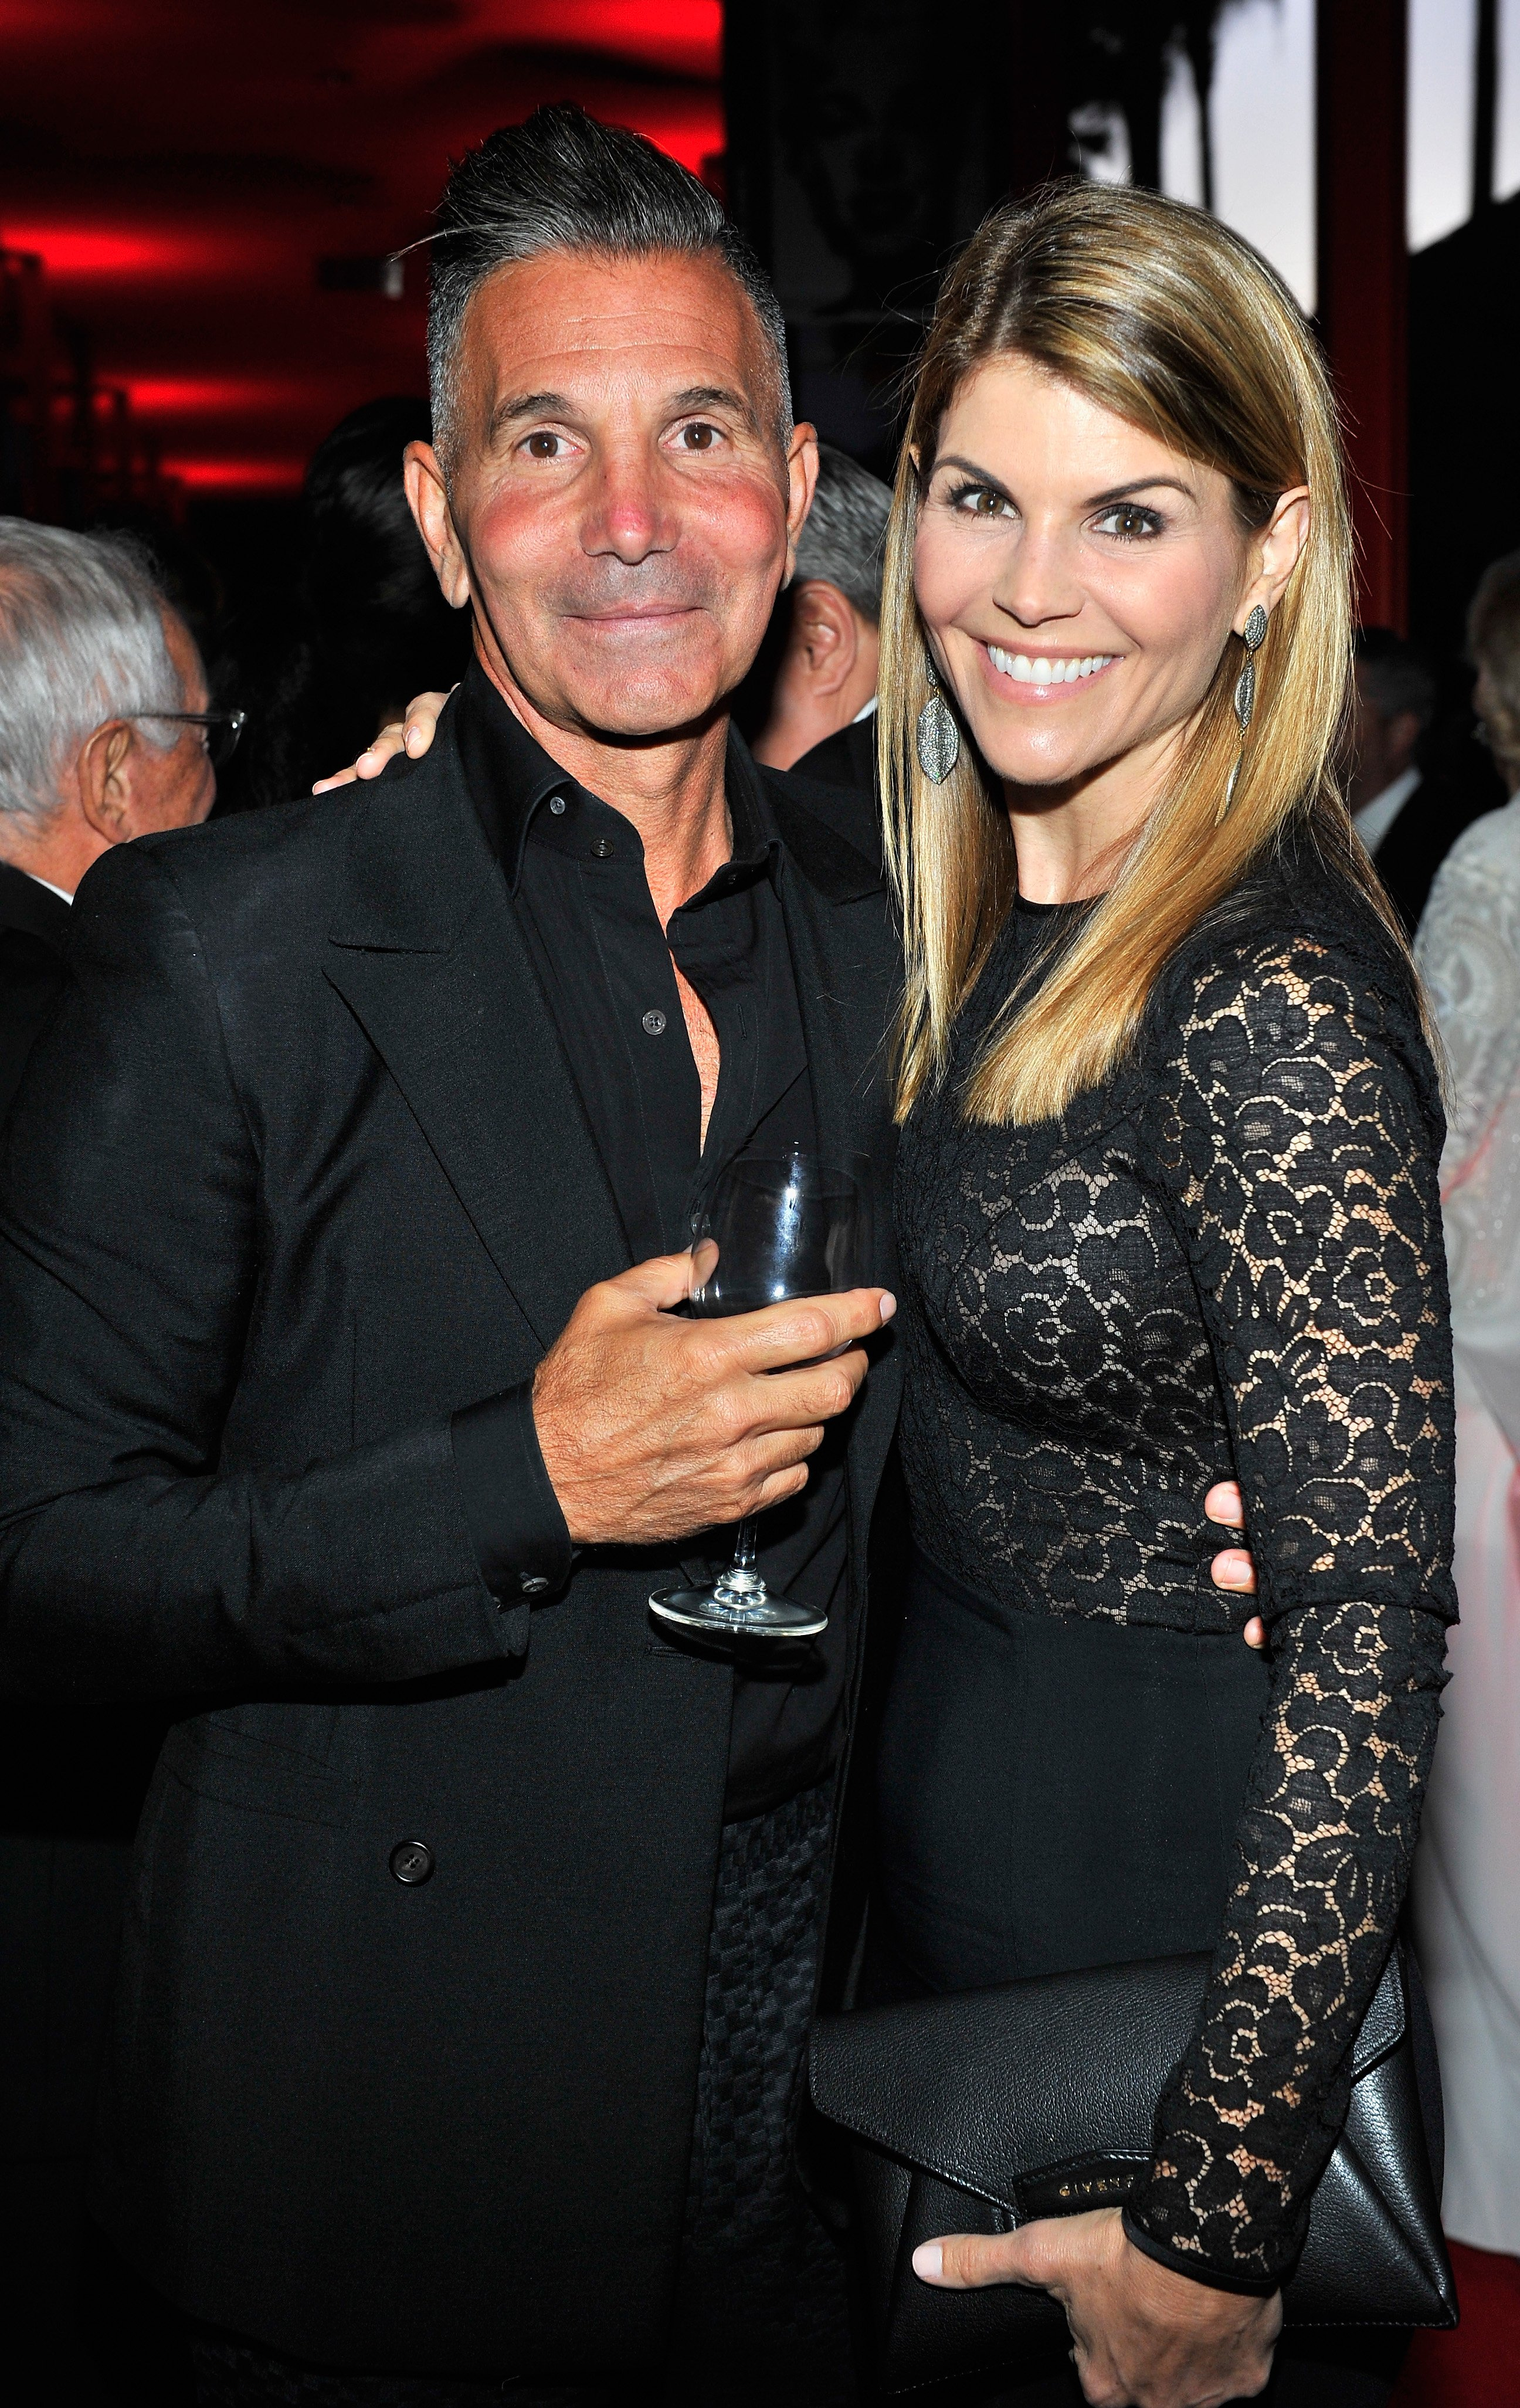 Lori Loughlin and Mossimo Giannulli spotted in Orange County, California | Photo: Getty Images